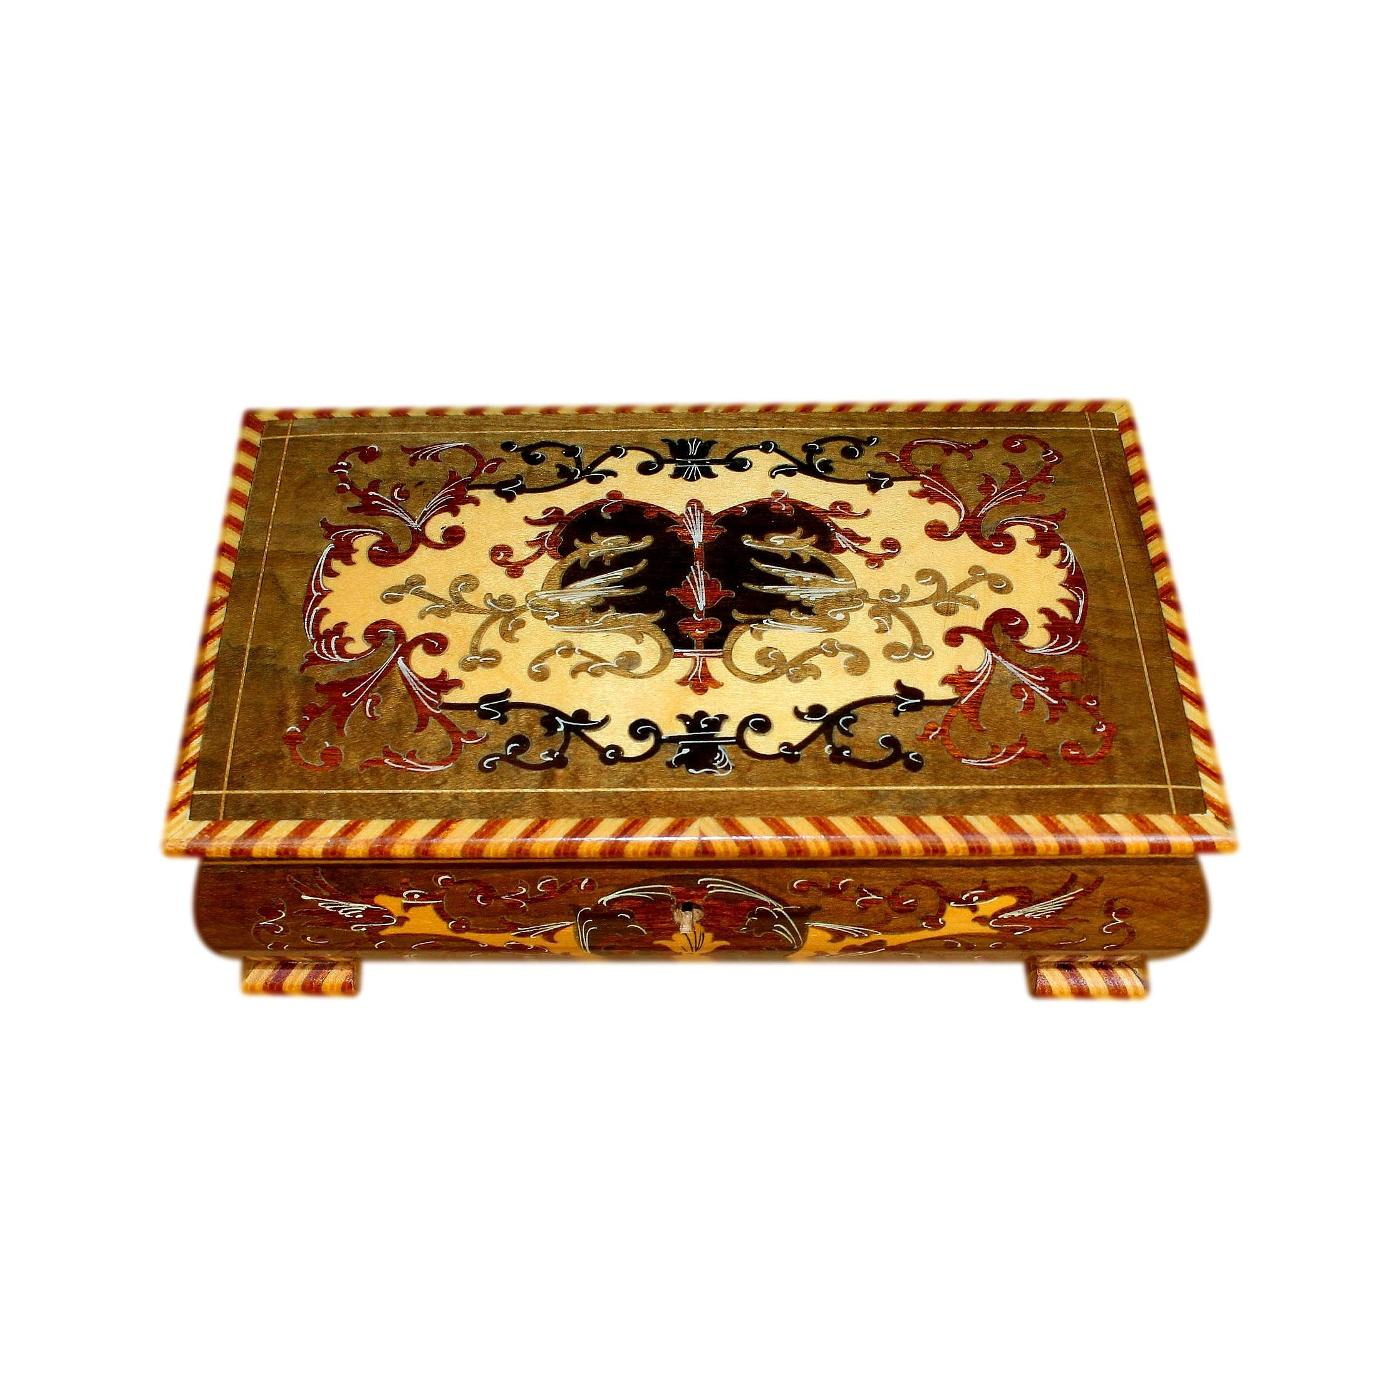 Beautiful Italian Musical Vintage Jewellery Box With Marquetry Inlay